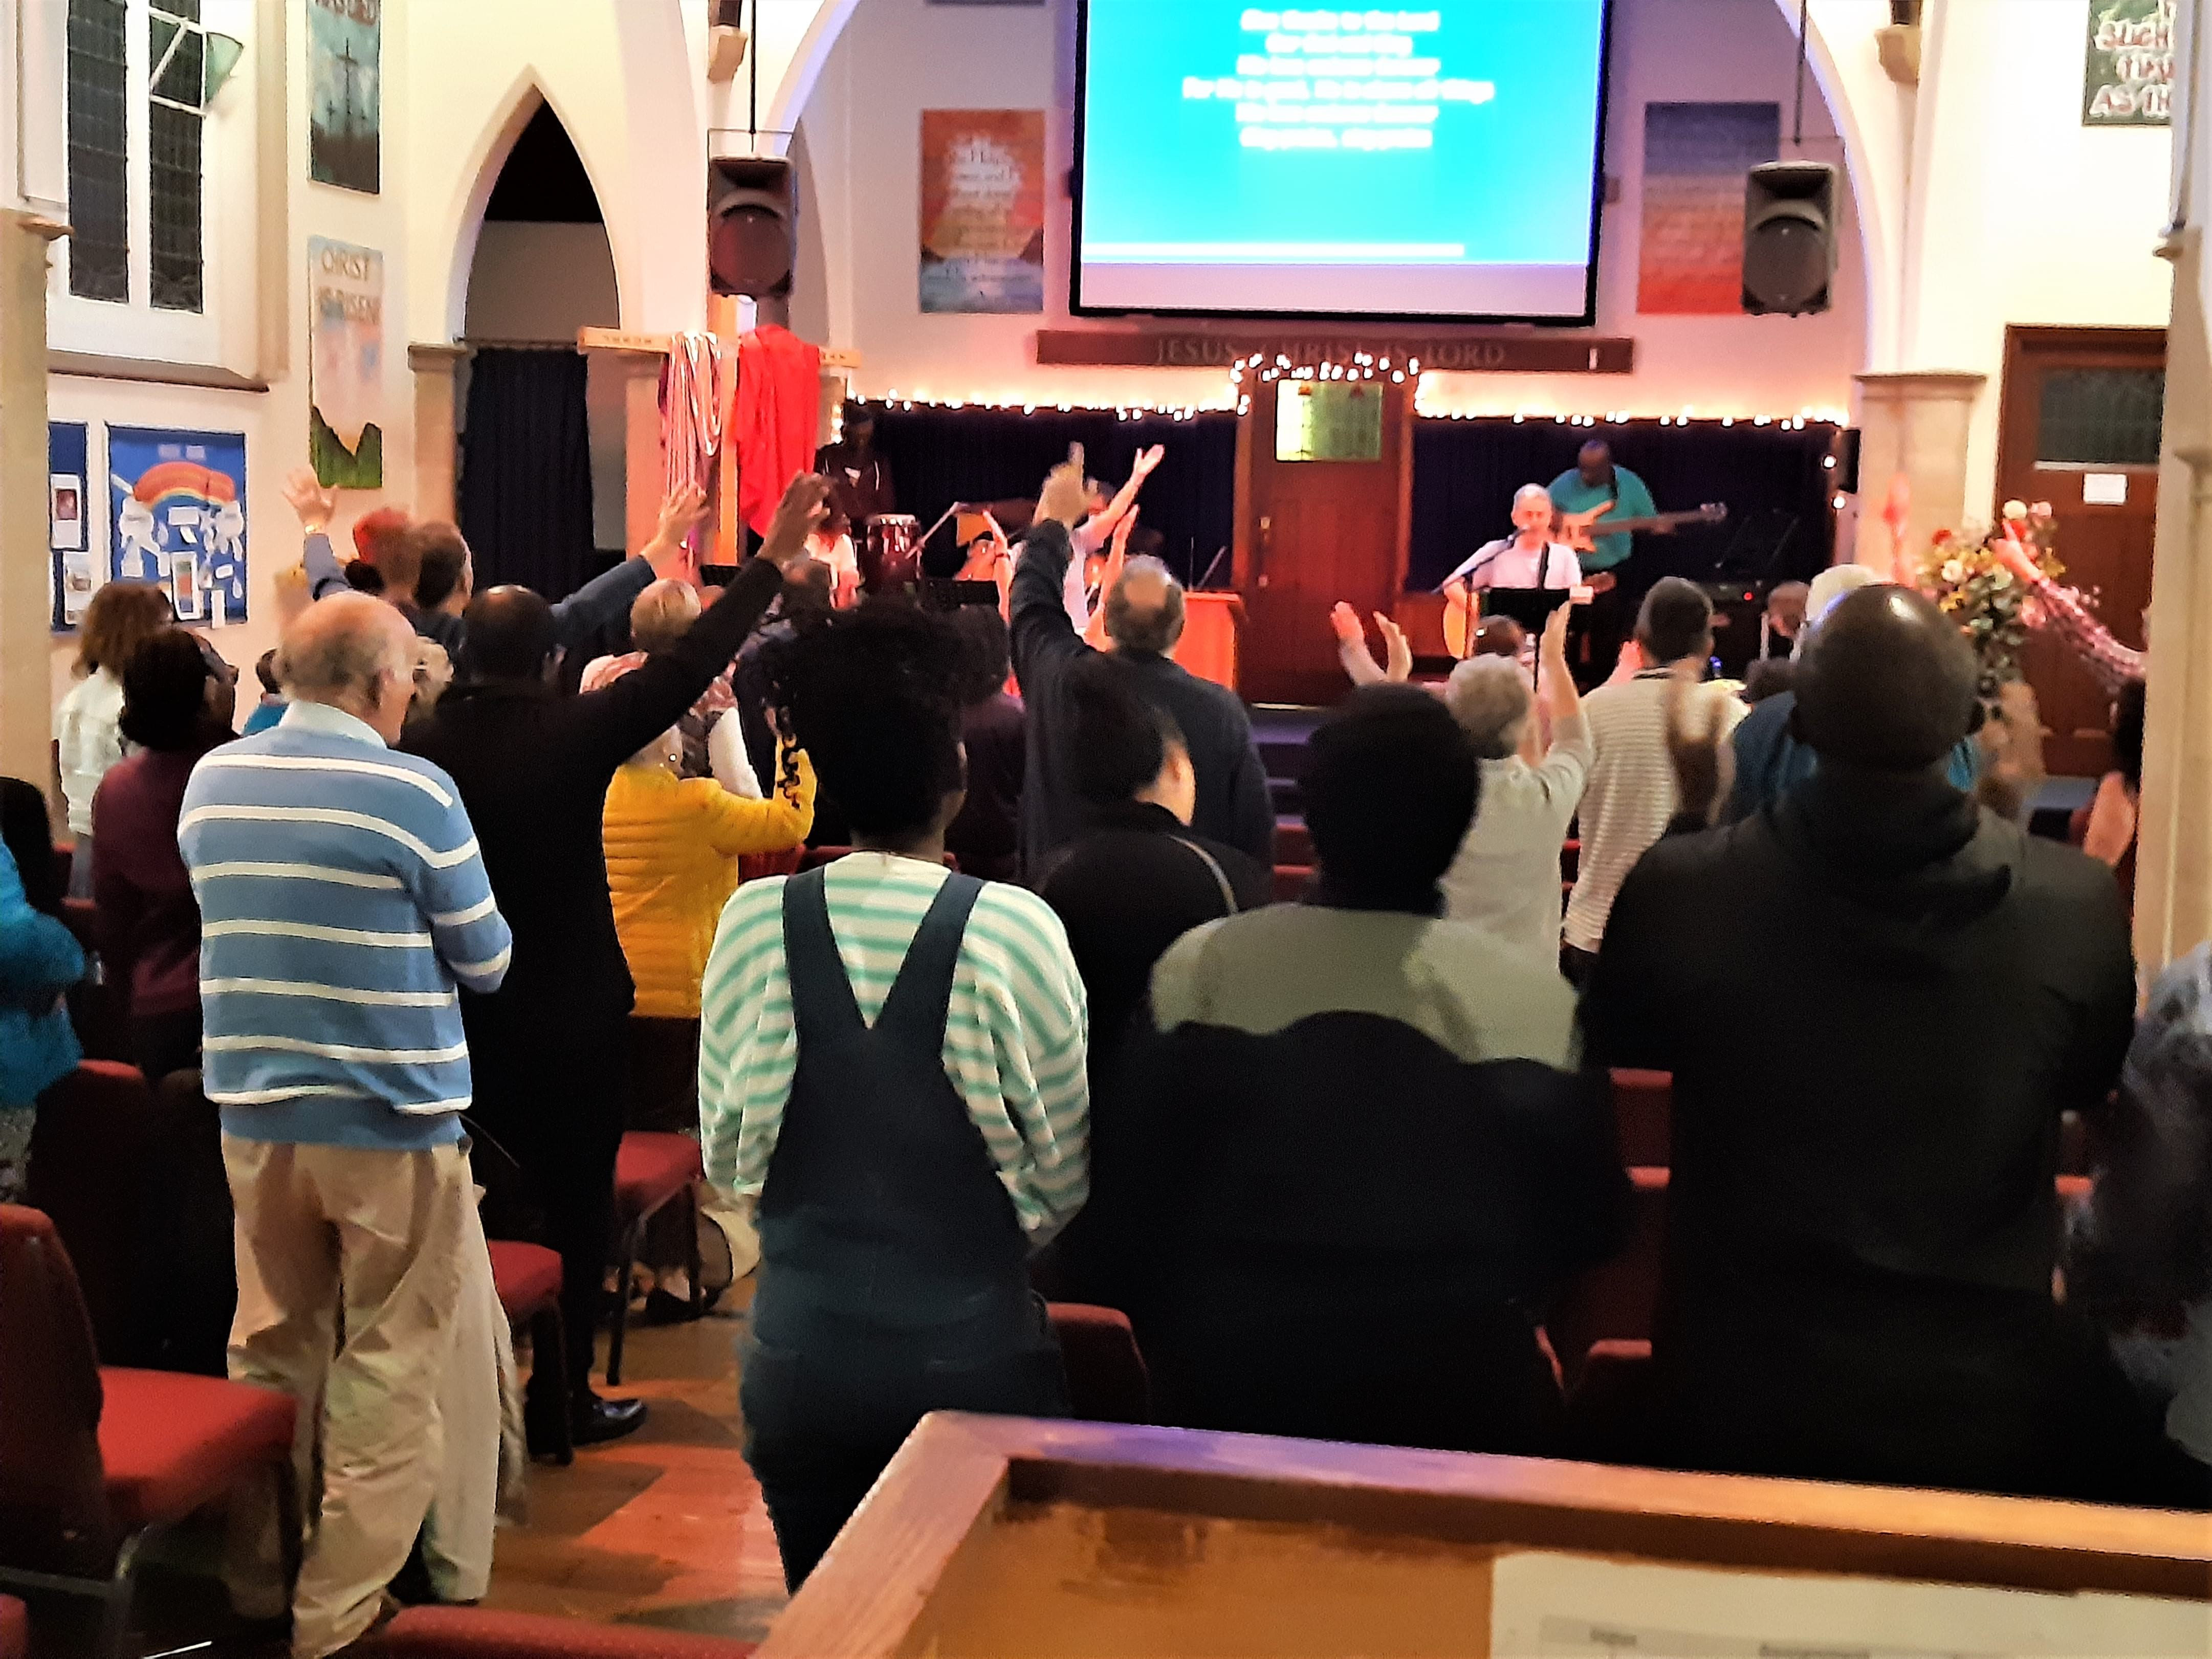 The TURNING has started in the Orpington area. Churches are coming together at 'The Green' to worship in the evening before going out the following day evangelising.